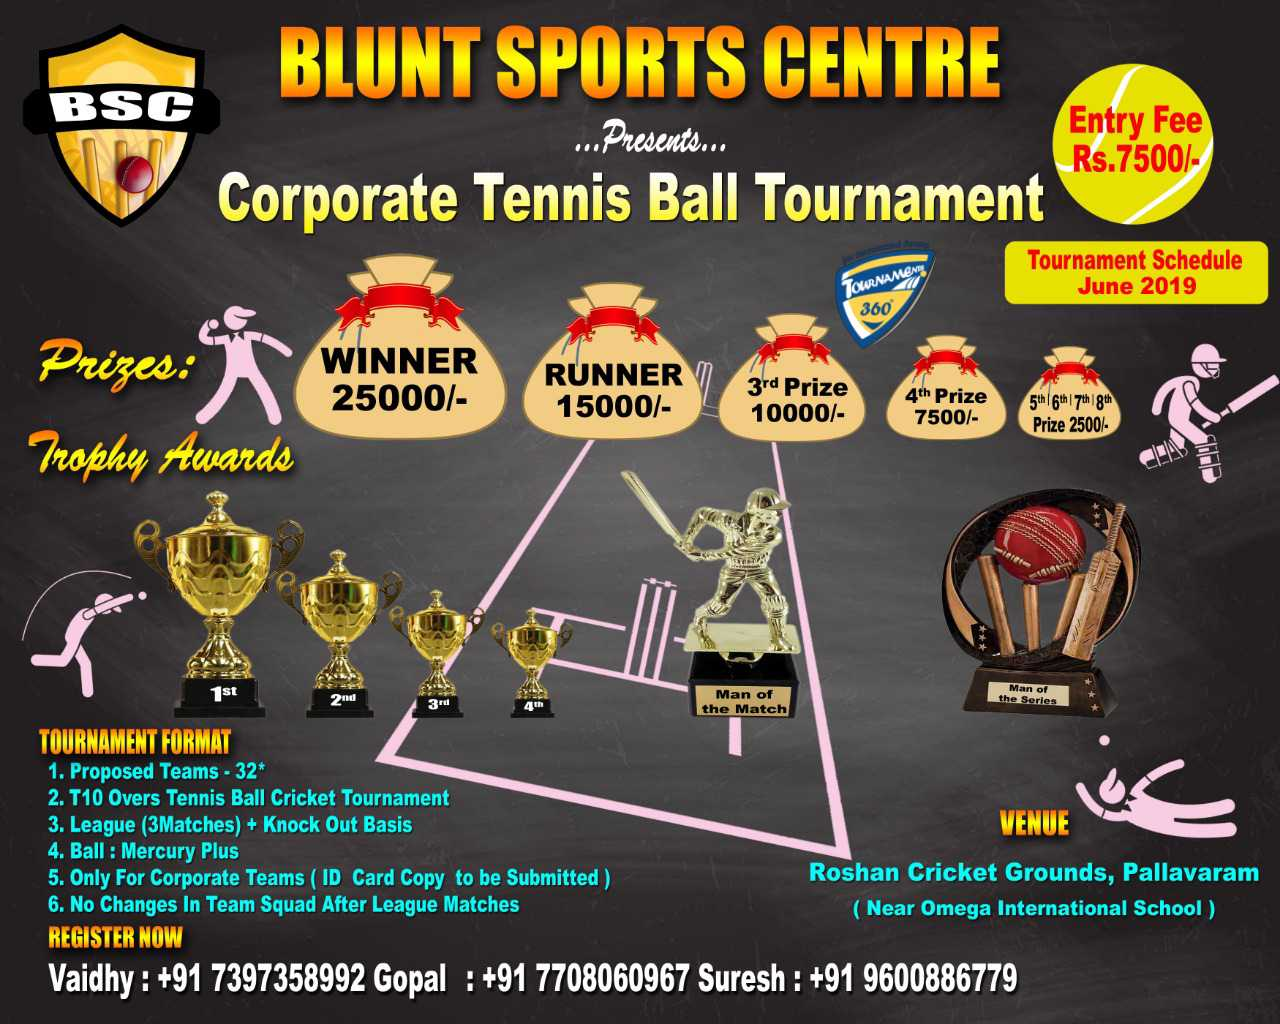 Corporate Tennis Ball Tournament